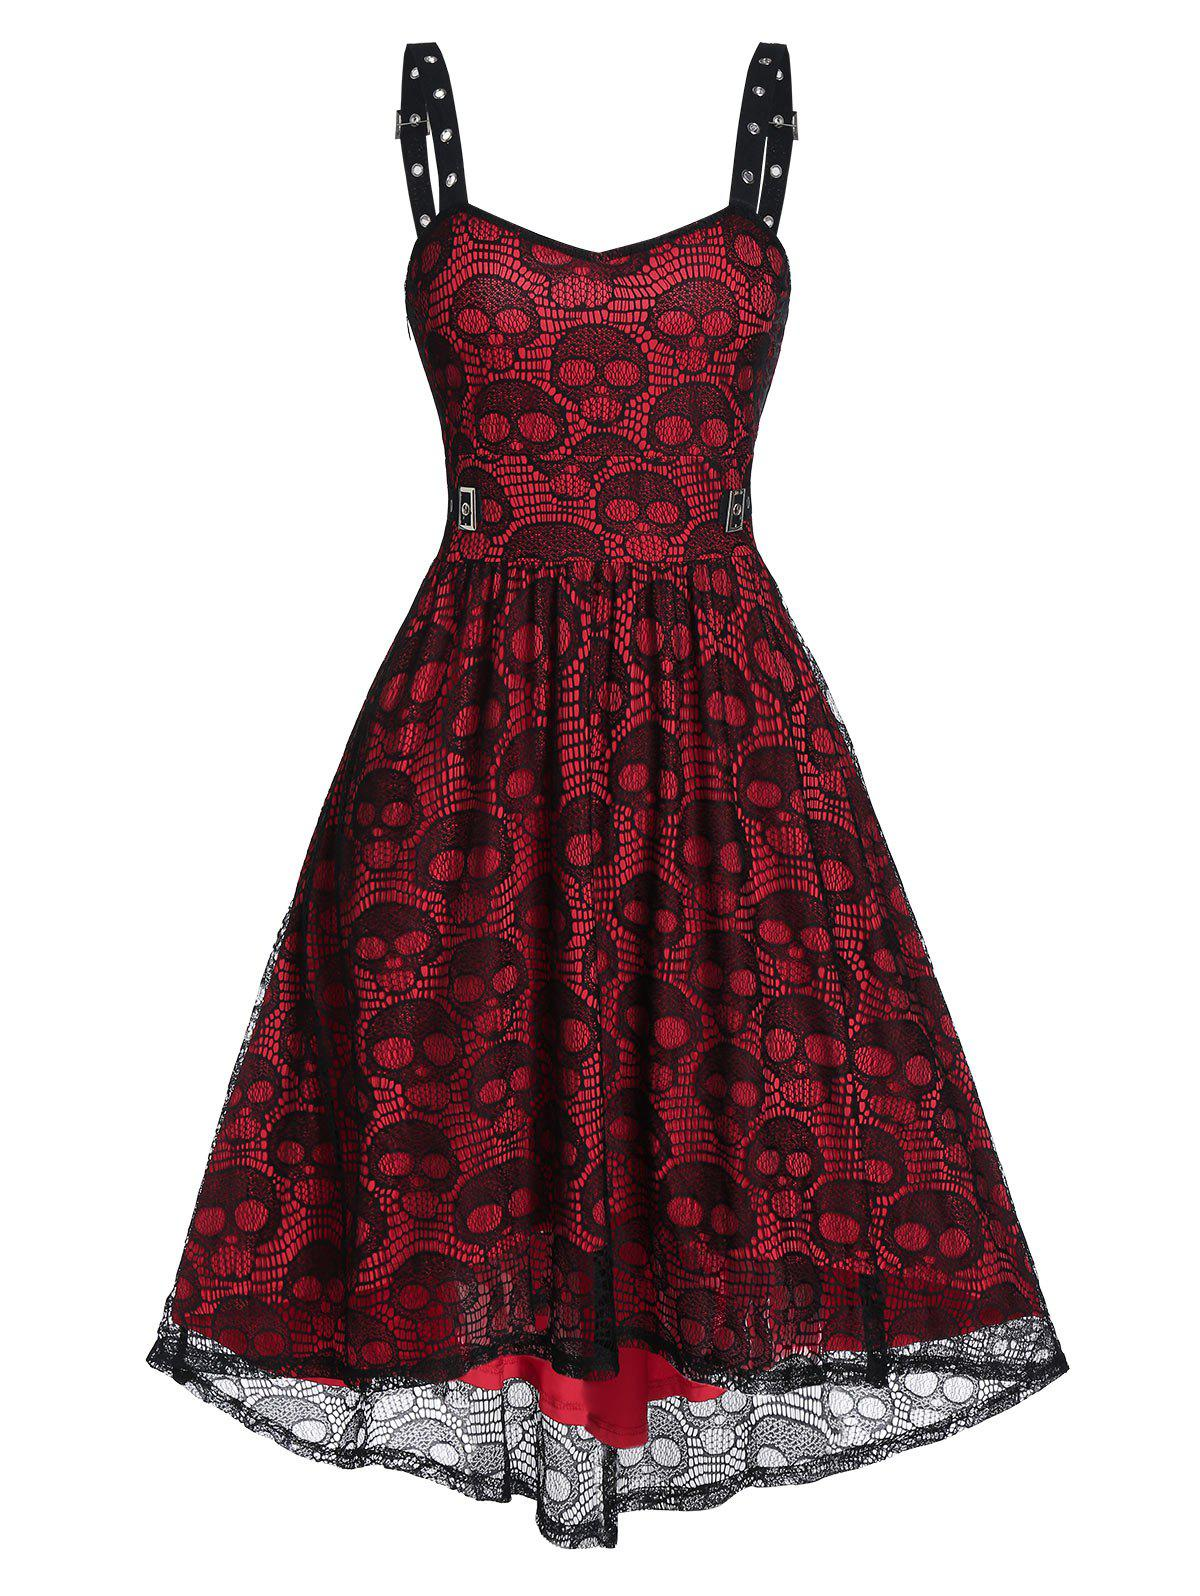 Buy Eyelet Buckle Skull Lace High Low Party Dress